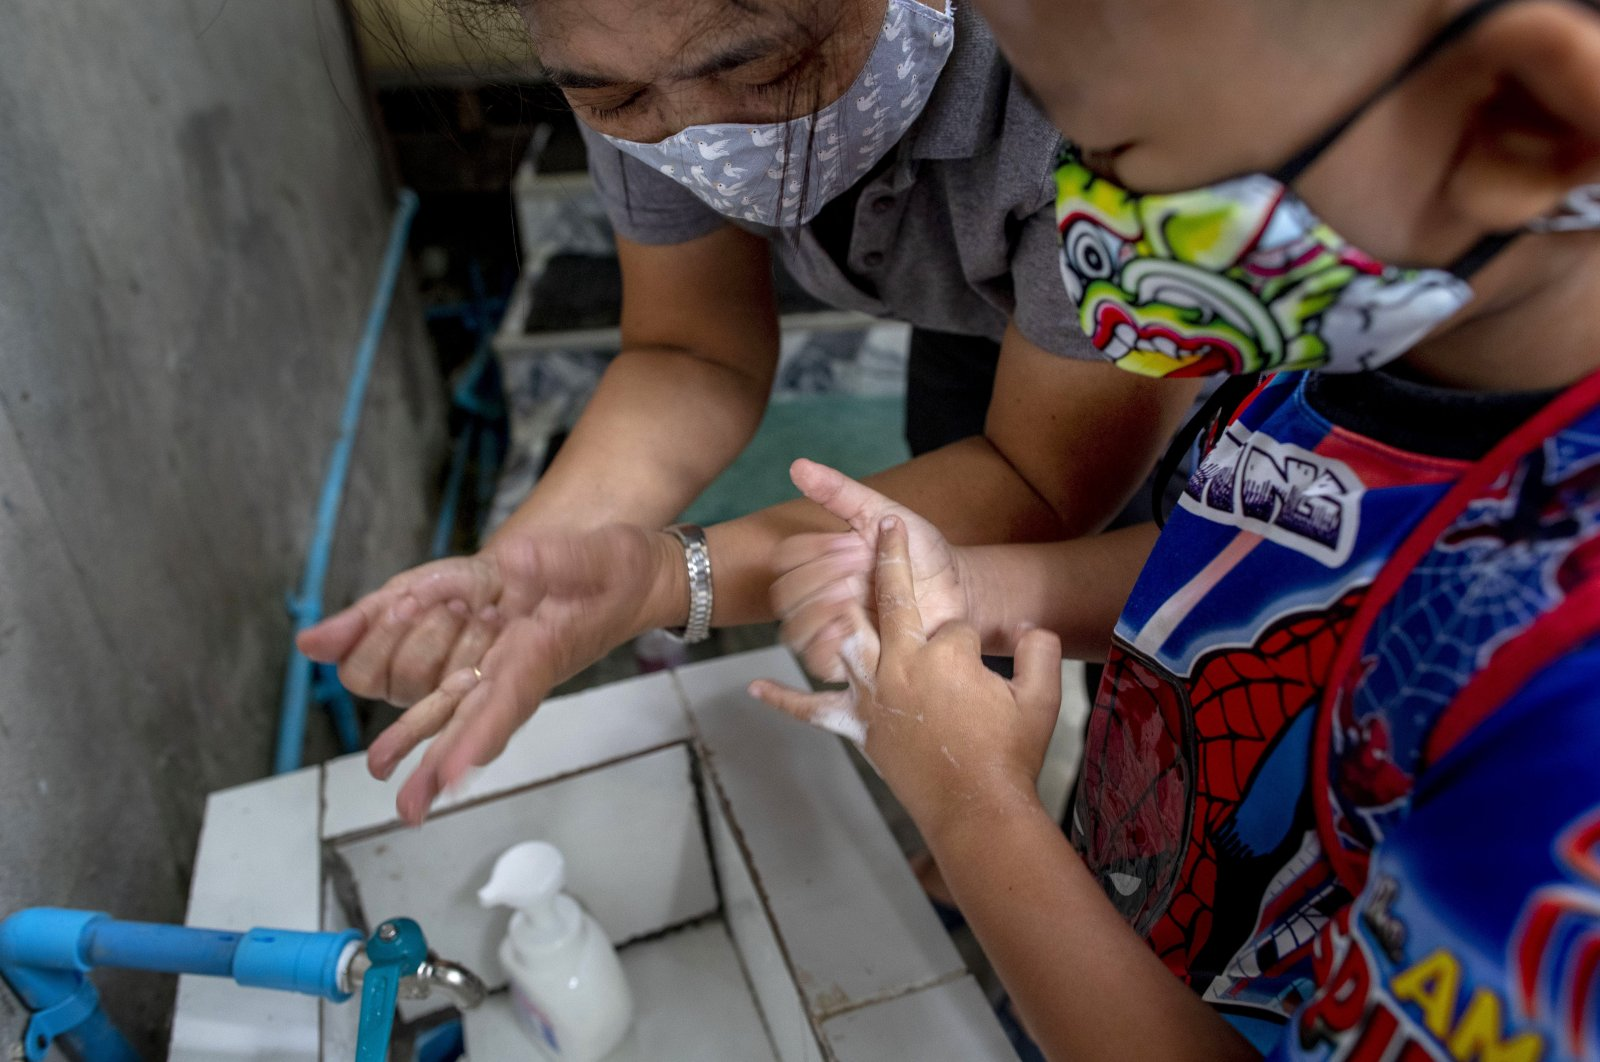 A teacher, left, guides a child on how to wash hands properly at the entrance of Makkasan preschool in Bangkok, Thailand, Wednesday, July 1, 2020. (AP Photo)